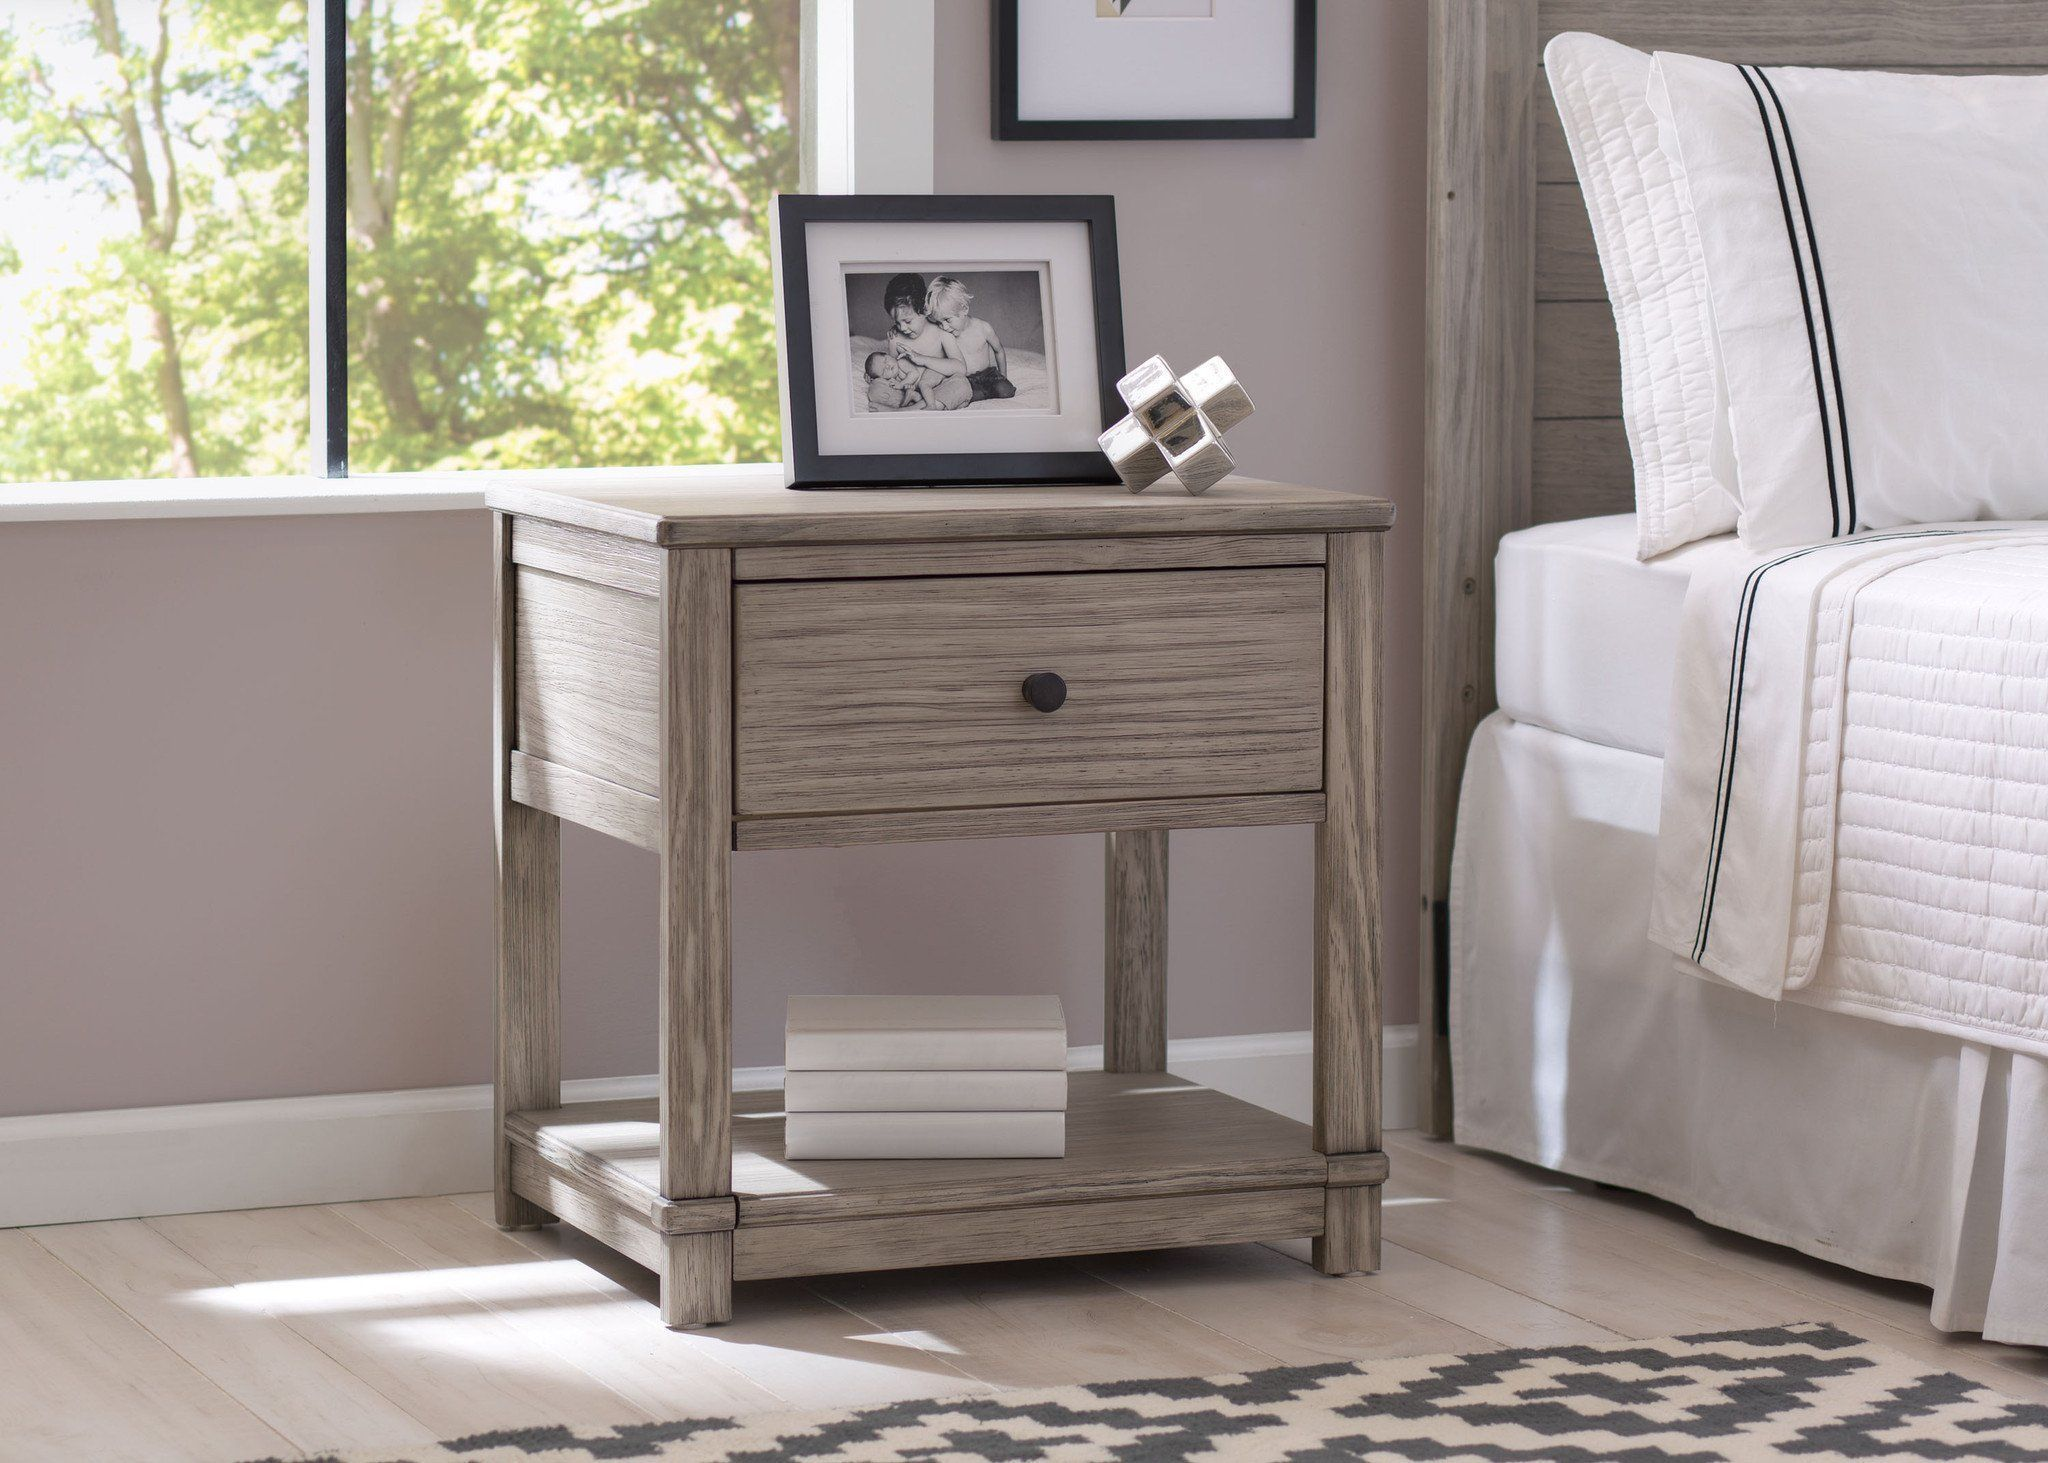 mercury row side chair the terrific amazing rustic white end monterey nightstand delta children hangtag tables simmons kids room view grey wood corner telephone table argos leick